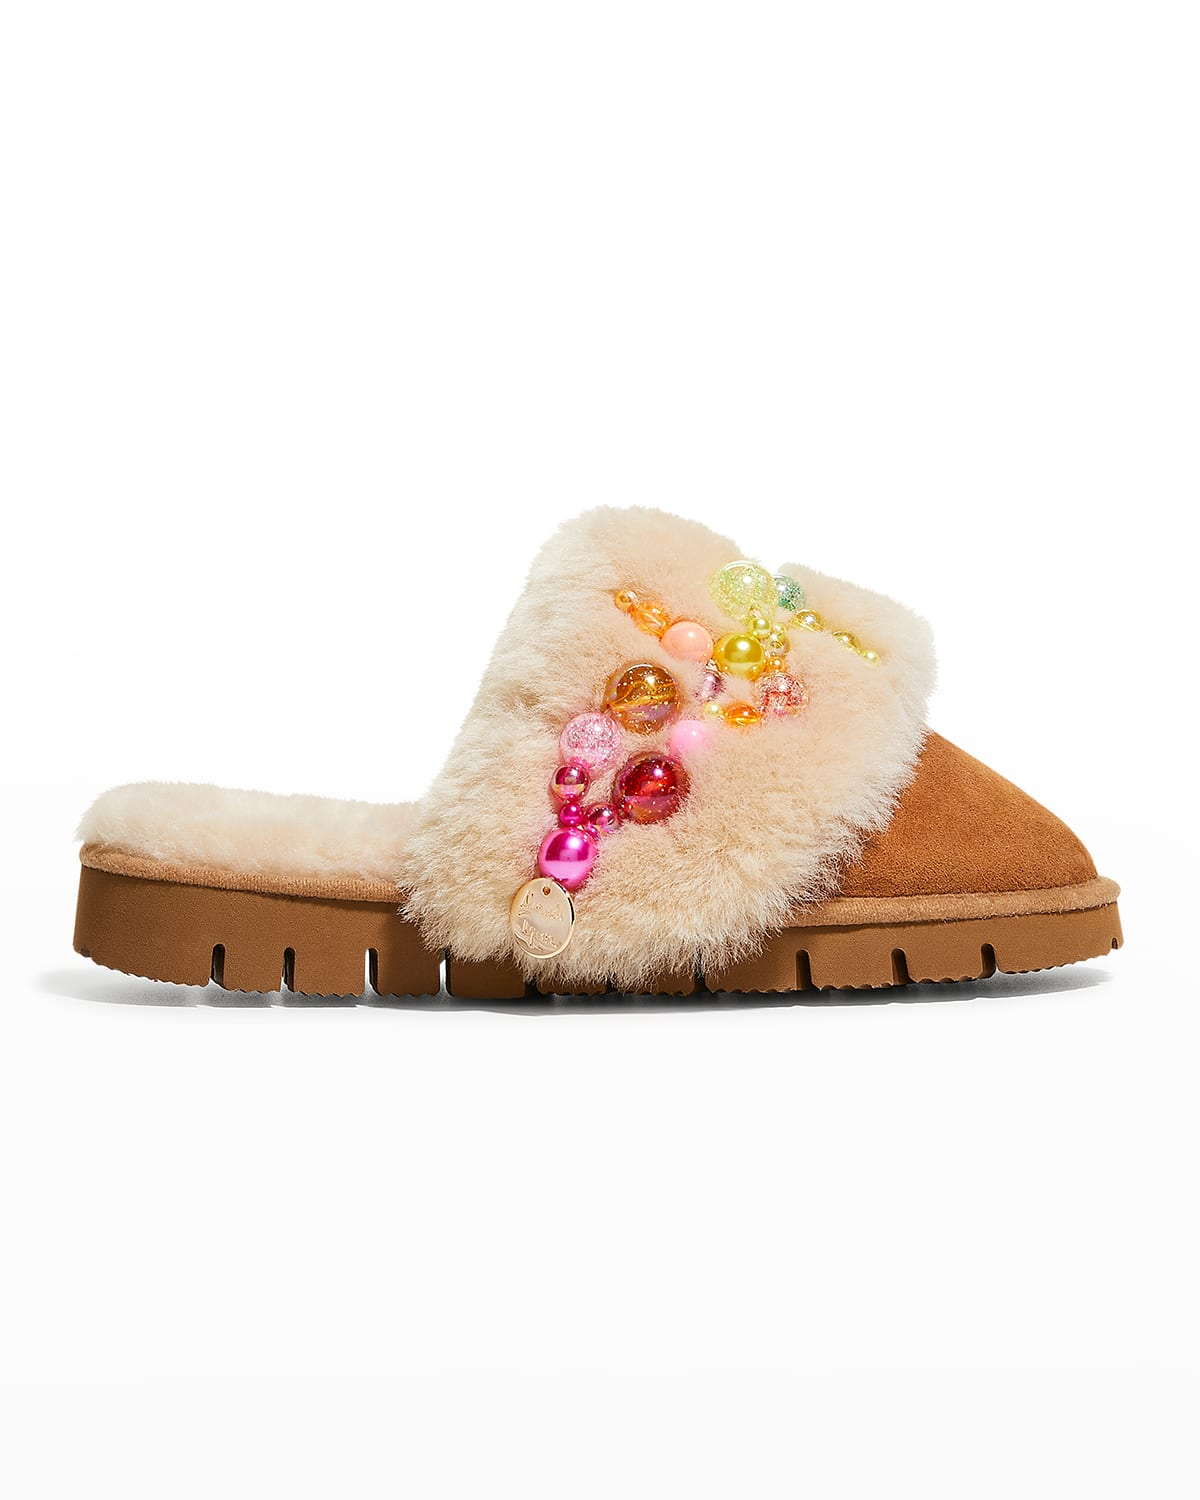 Pinctada Pearly Rainbow Suede Mule Slippers